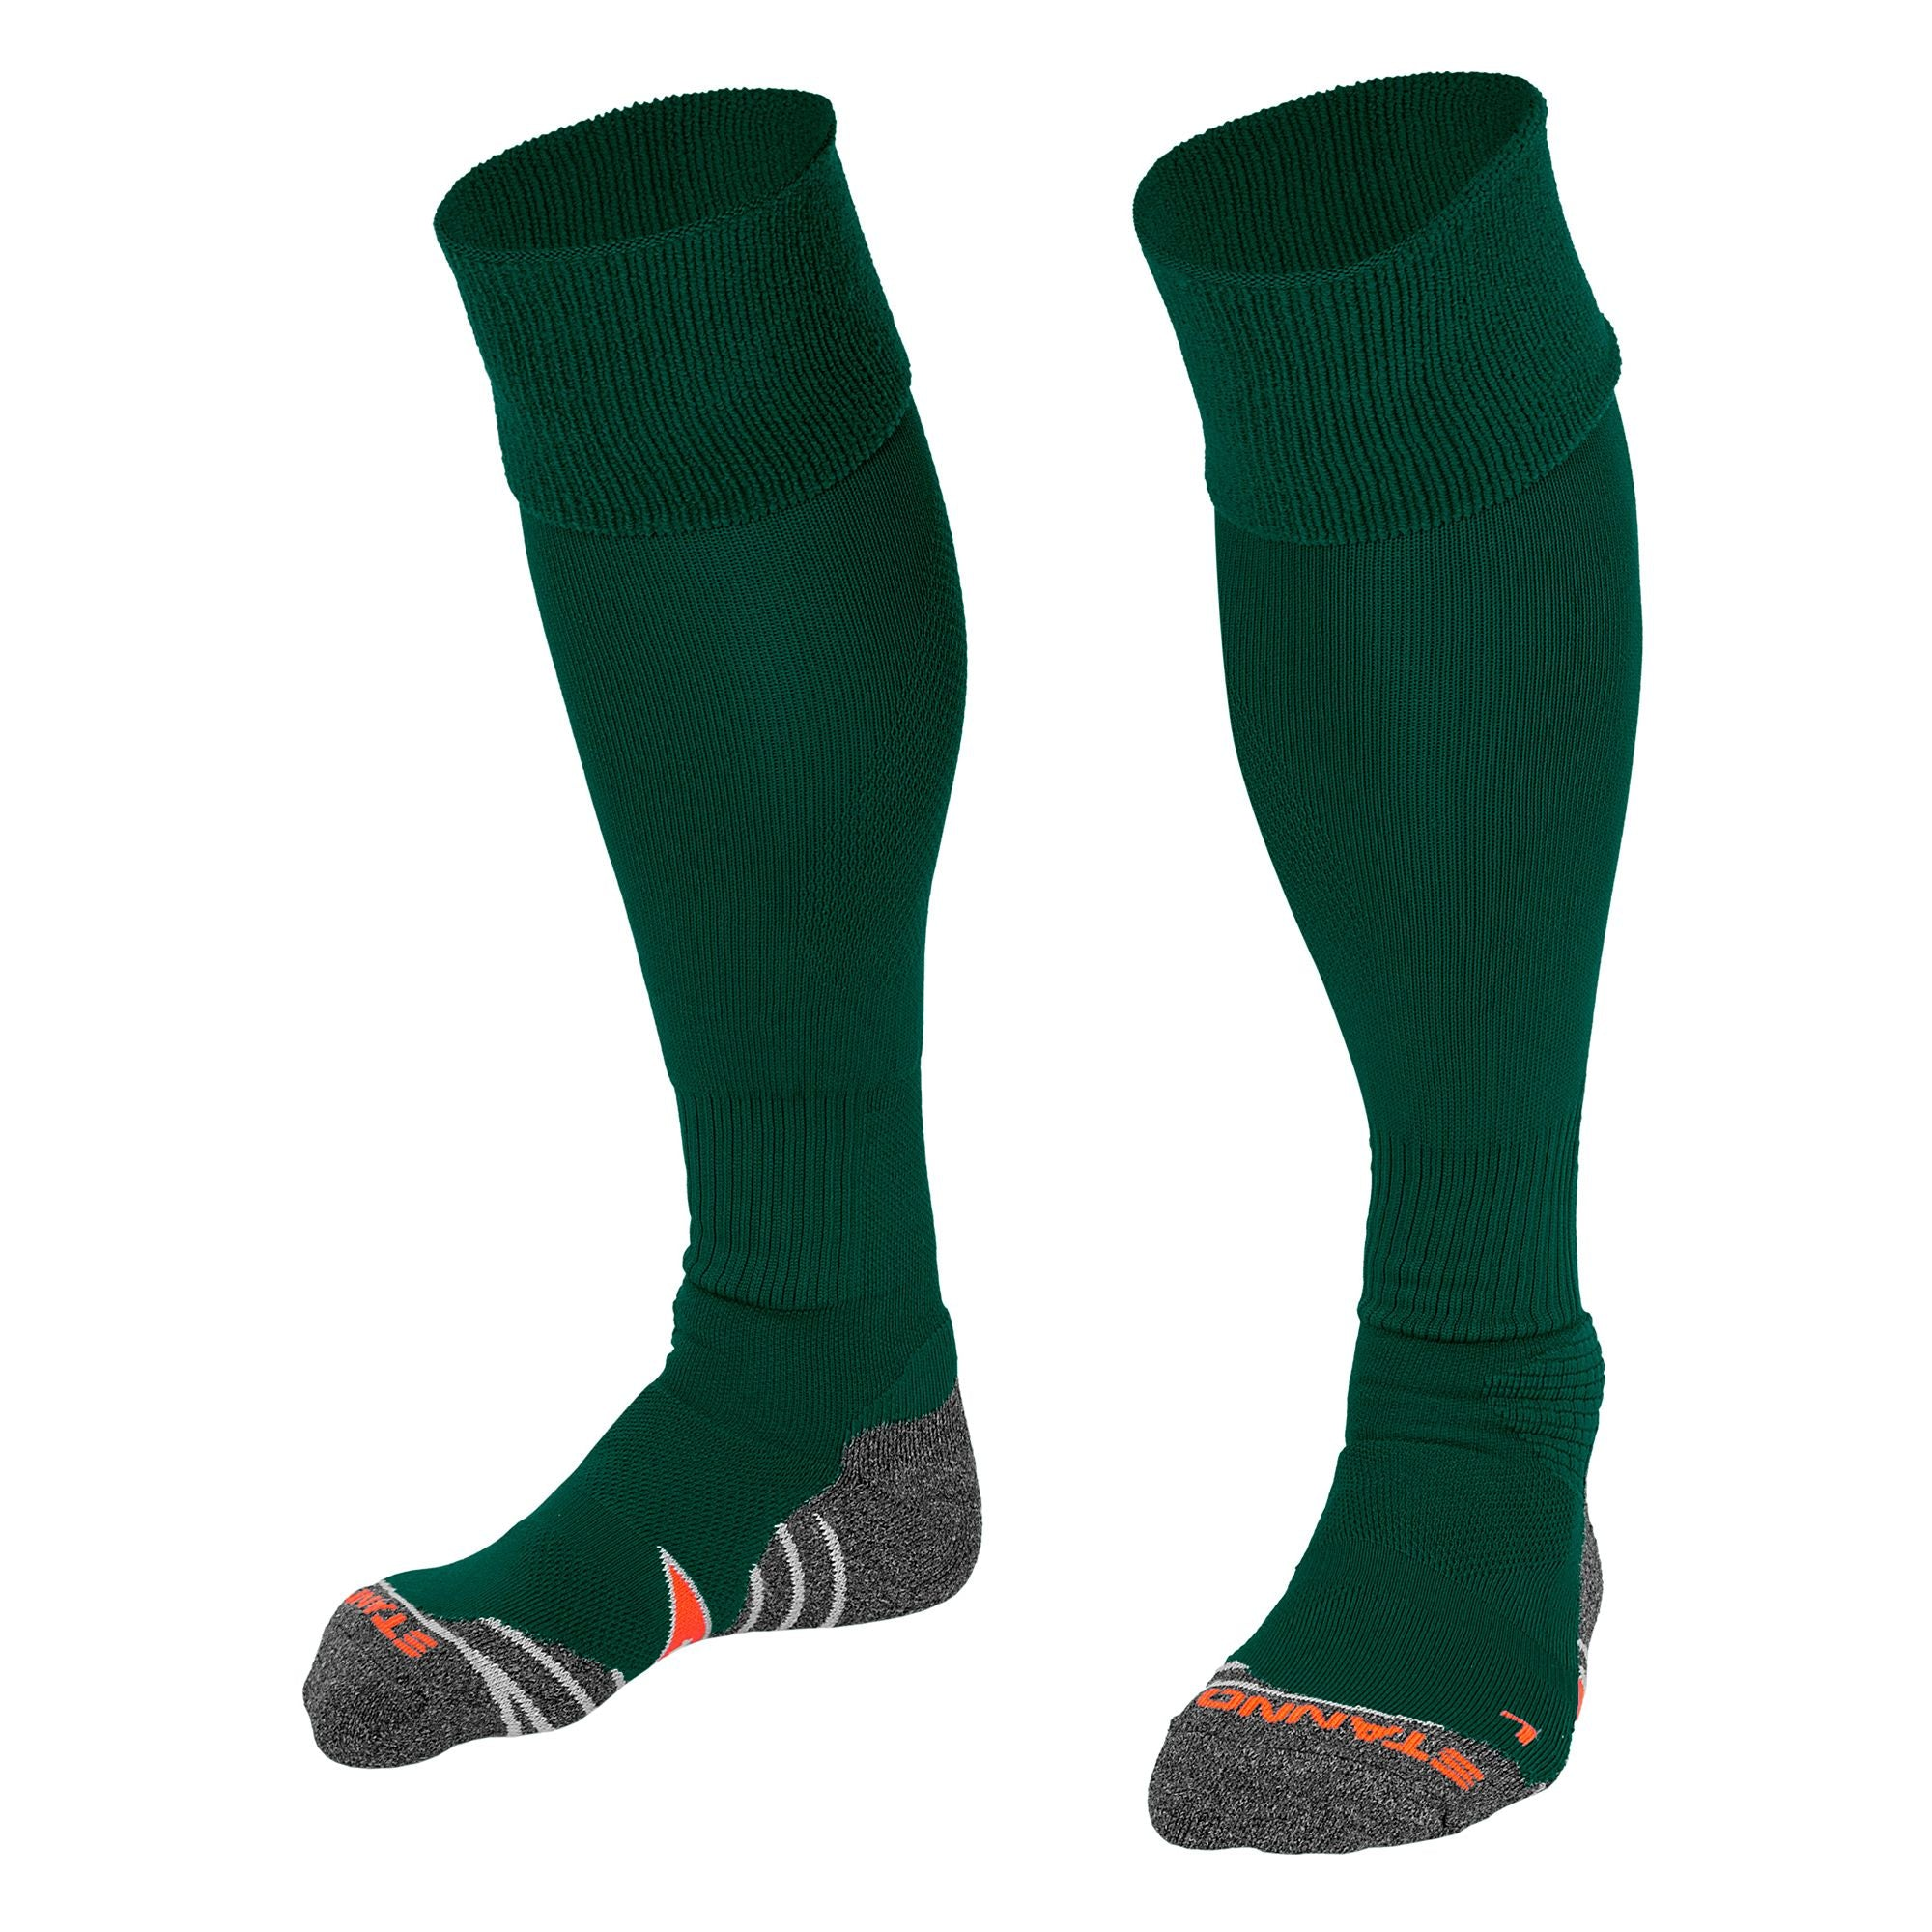 Stanno Uni Sock II football sock in bottle green with grey, white and orange sole